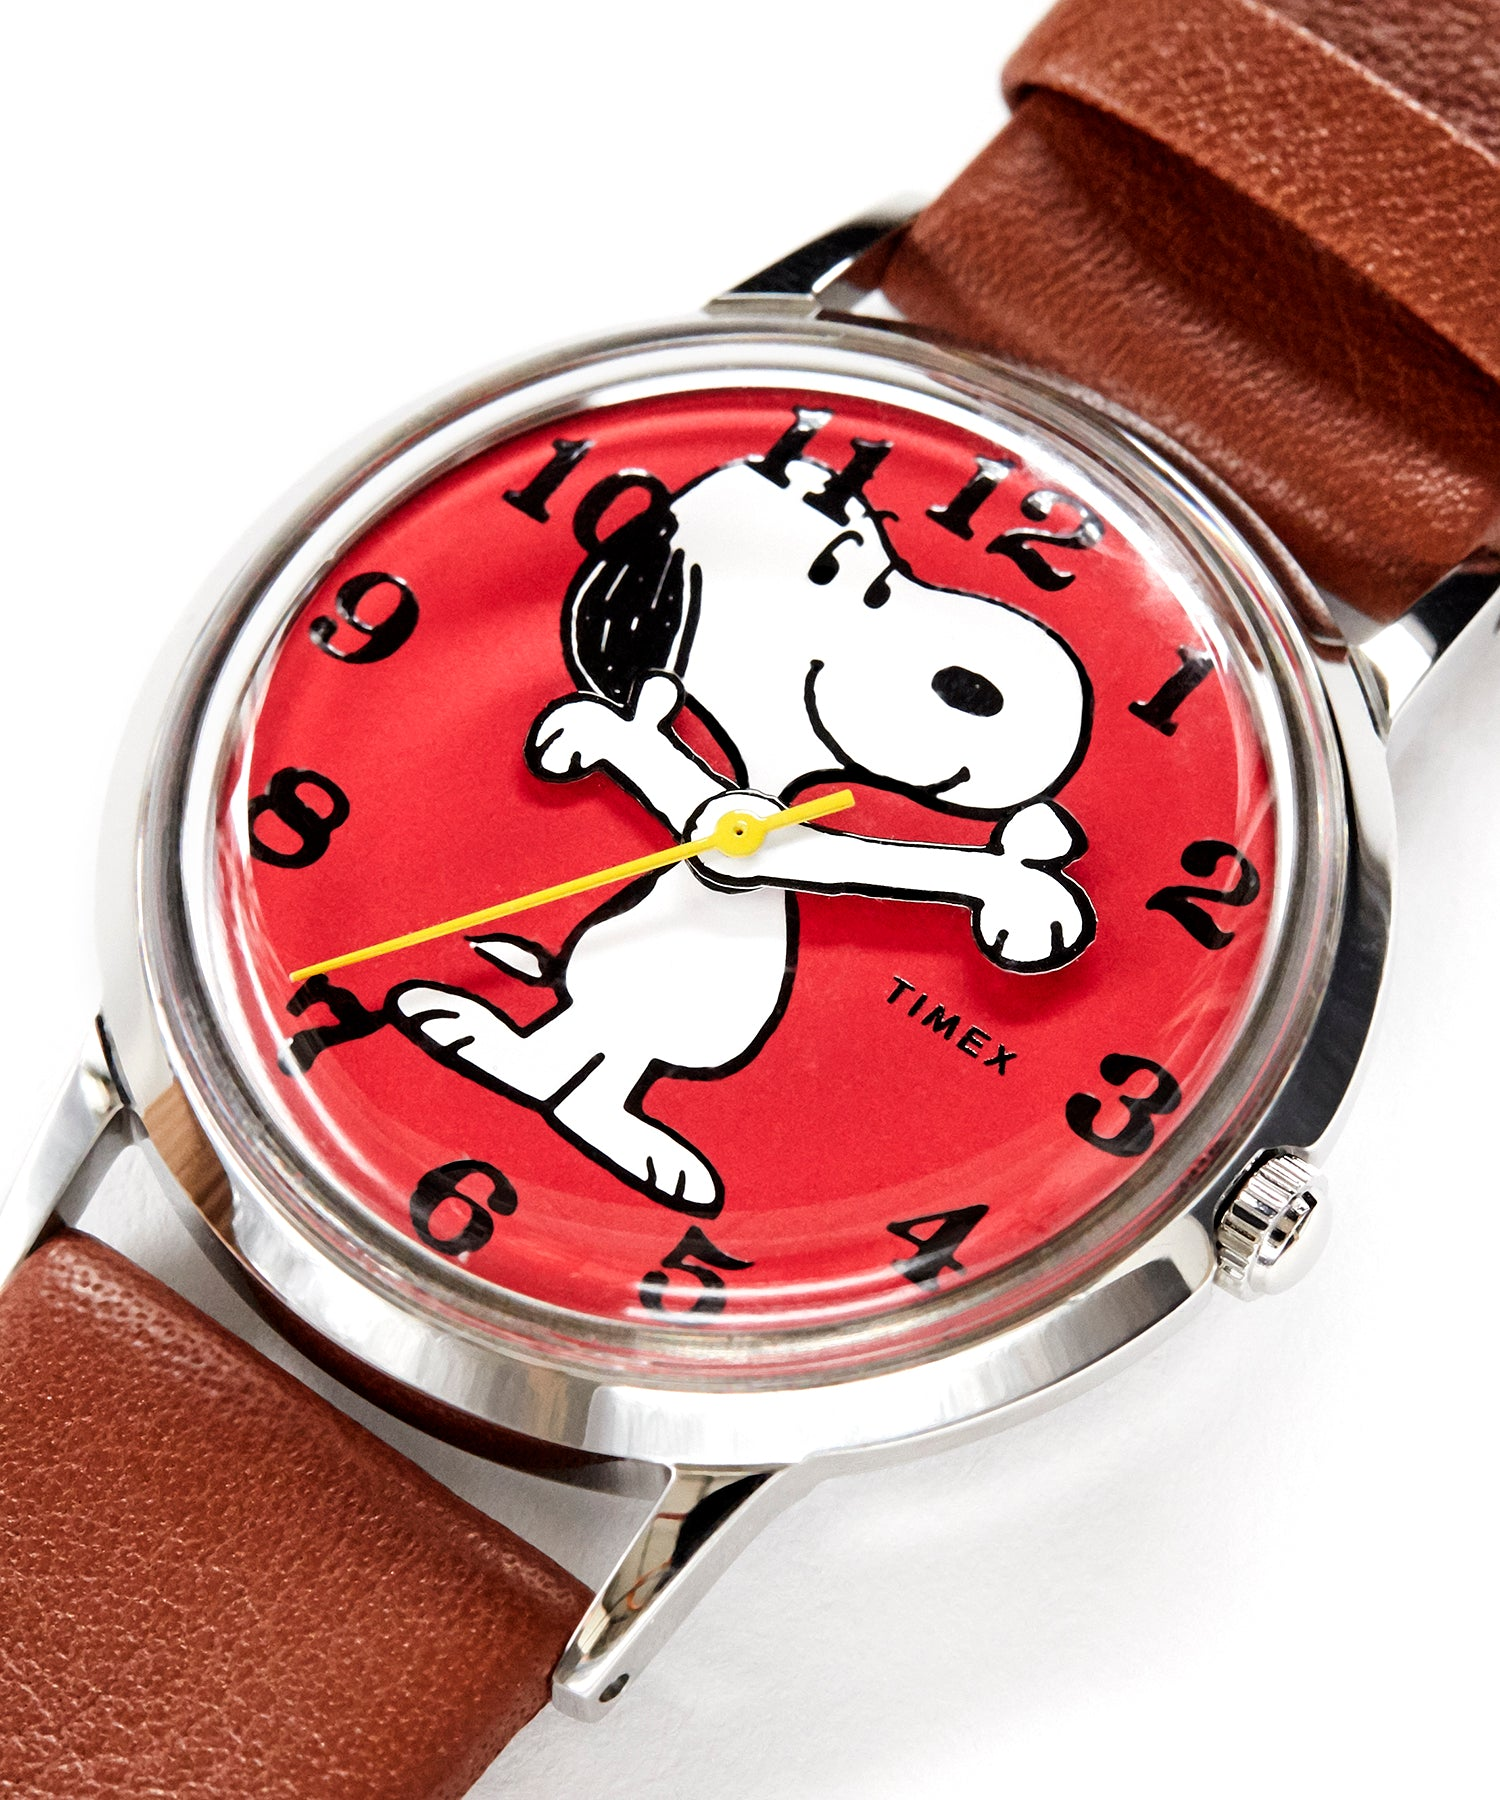 Timex X Peanuts Snoopy Watch